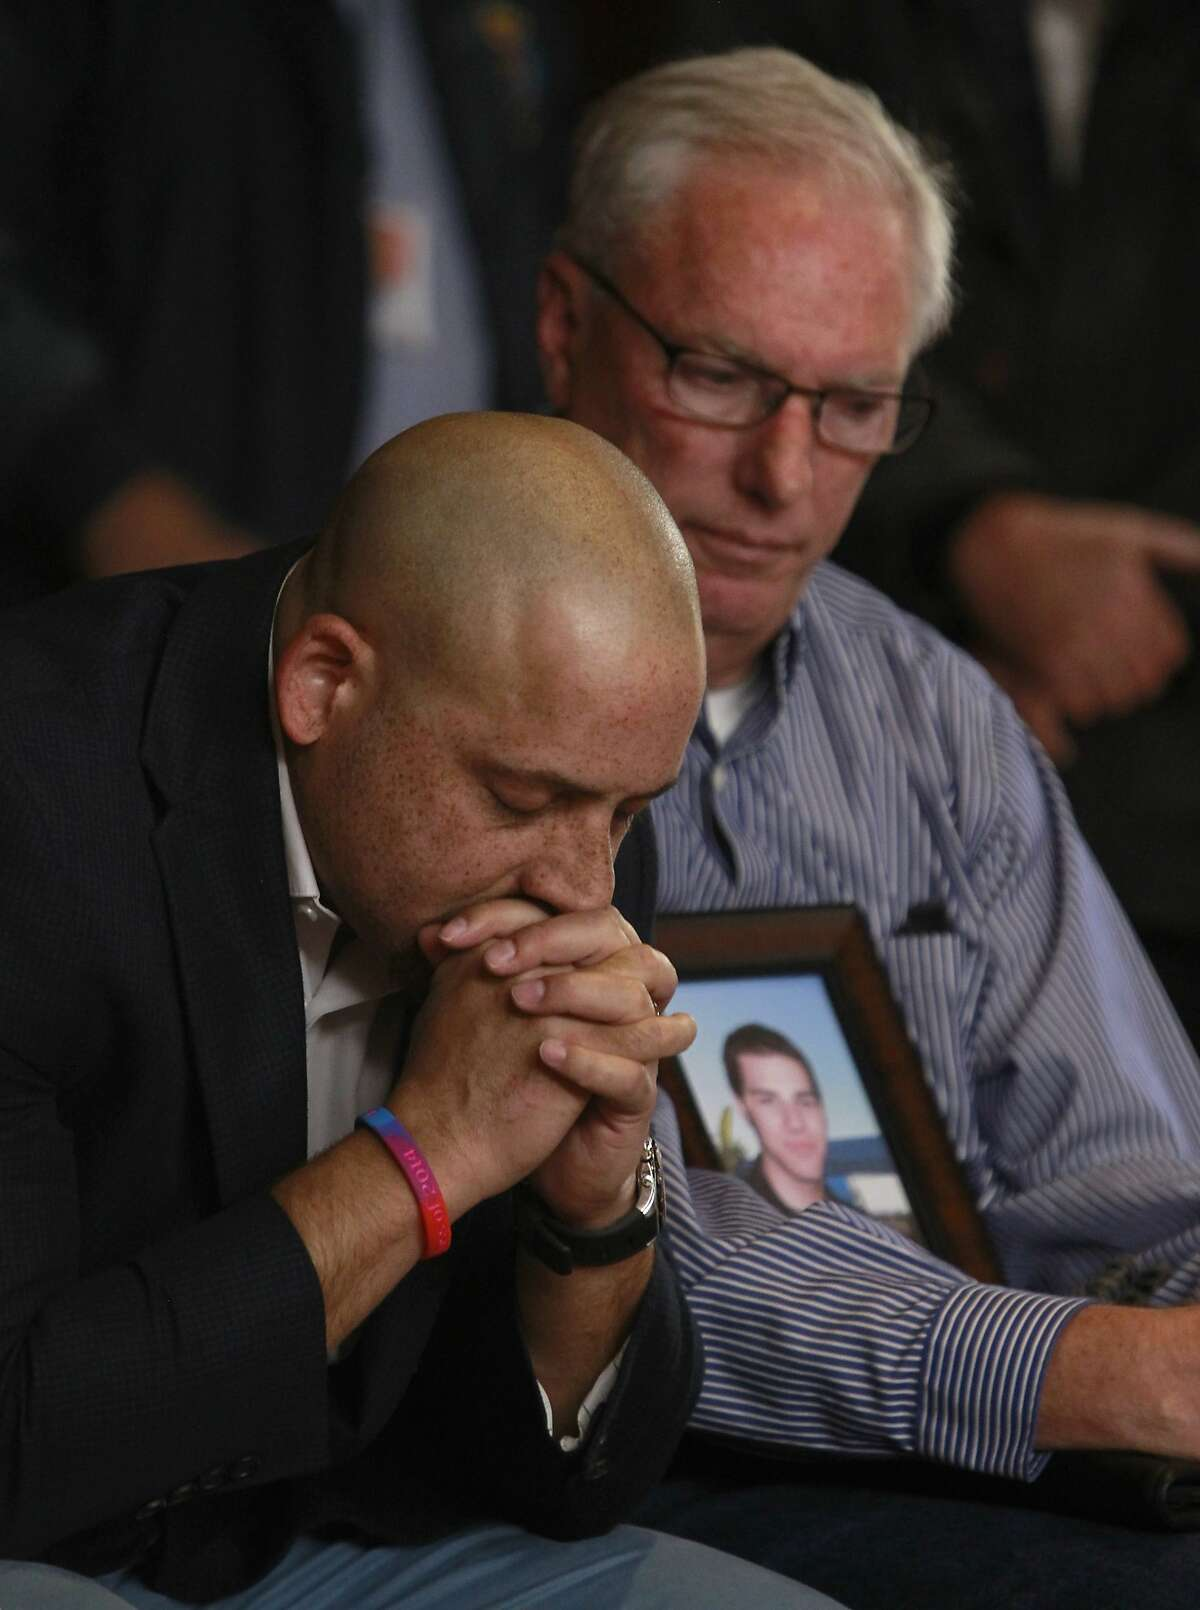 Suicide survivor Kevin Hines (left) and Mark Whitmer listen to public comments before the Golden Gate Bridge District board of directors vote unanimously in favor of erecting a suicide barrier on the iconic bridge in San Francisco, Calif. on Friday, June 27, 2014. Hines jumped from the bridge and survived but Whitmer's son Matthew took his own life after jumping from the span in 2007.